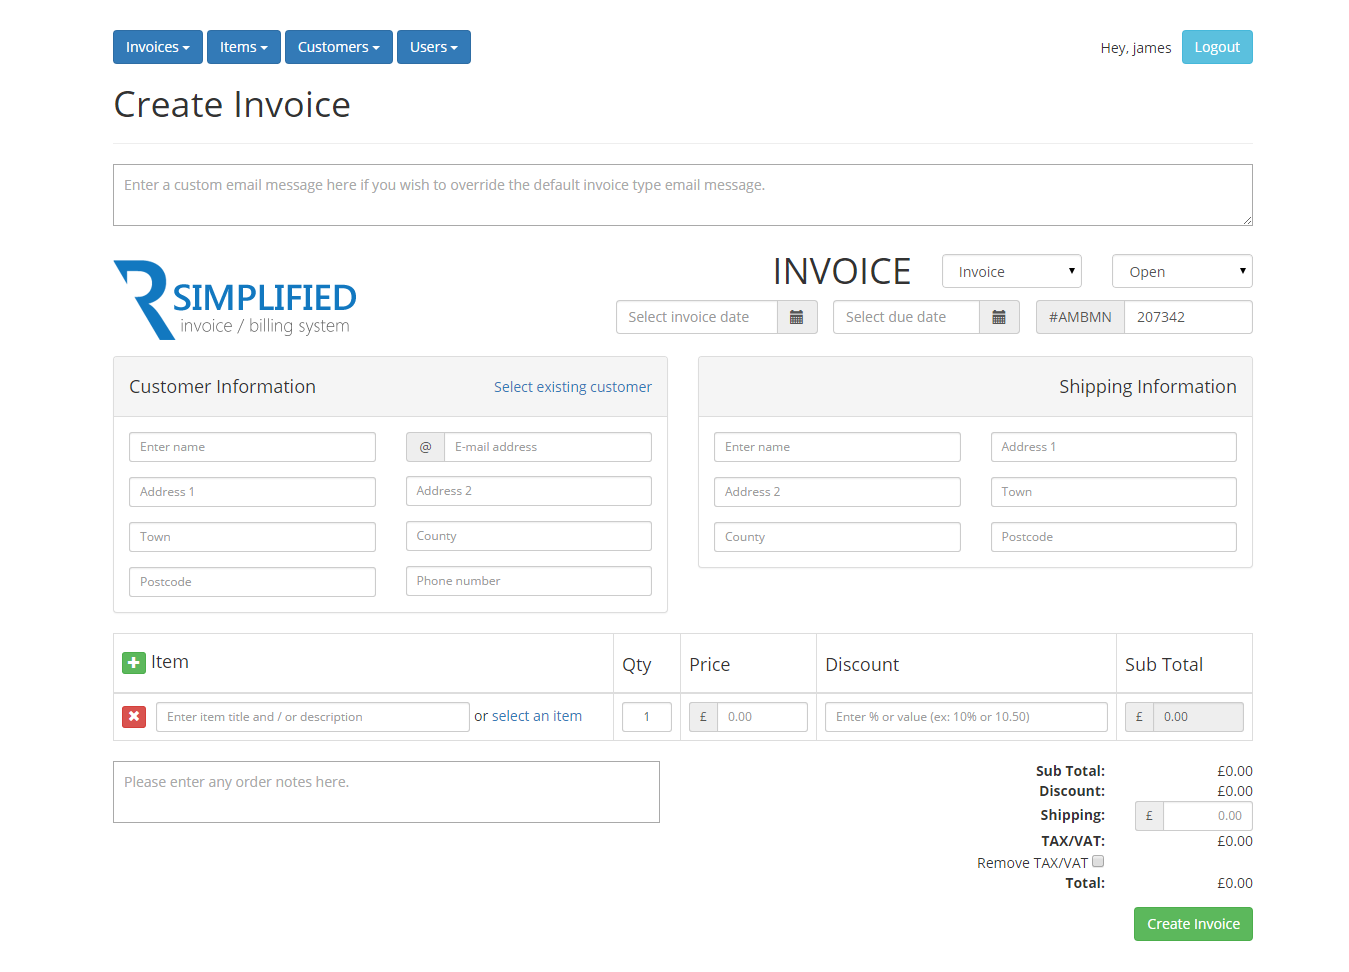 Soulfulpowerus  Surprising Simplified Php Invoice  Billing System By Rebootdigitaluk  With Marvelous  Createinvoicepng  With Comely Aynax Invoice Also Template Invoice In Addition Freelance Invoice Template And Dealer Invoice As Well As Anyx Invoice Additionally Google Invoice Template From Codecanyonnet With Soulfulpowerus  Marvelous Simplified Php Invoice  Billing System By Rebootdigitaluk  With Comely  Createinvoicepng  And Surprising Aynax Invoice Also Template Invoice In Addition Freelance Invoice Template From Codecanyonnet